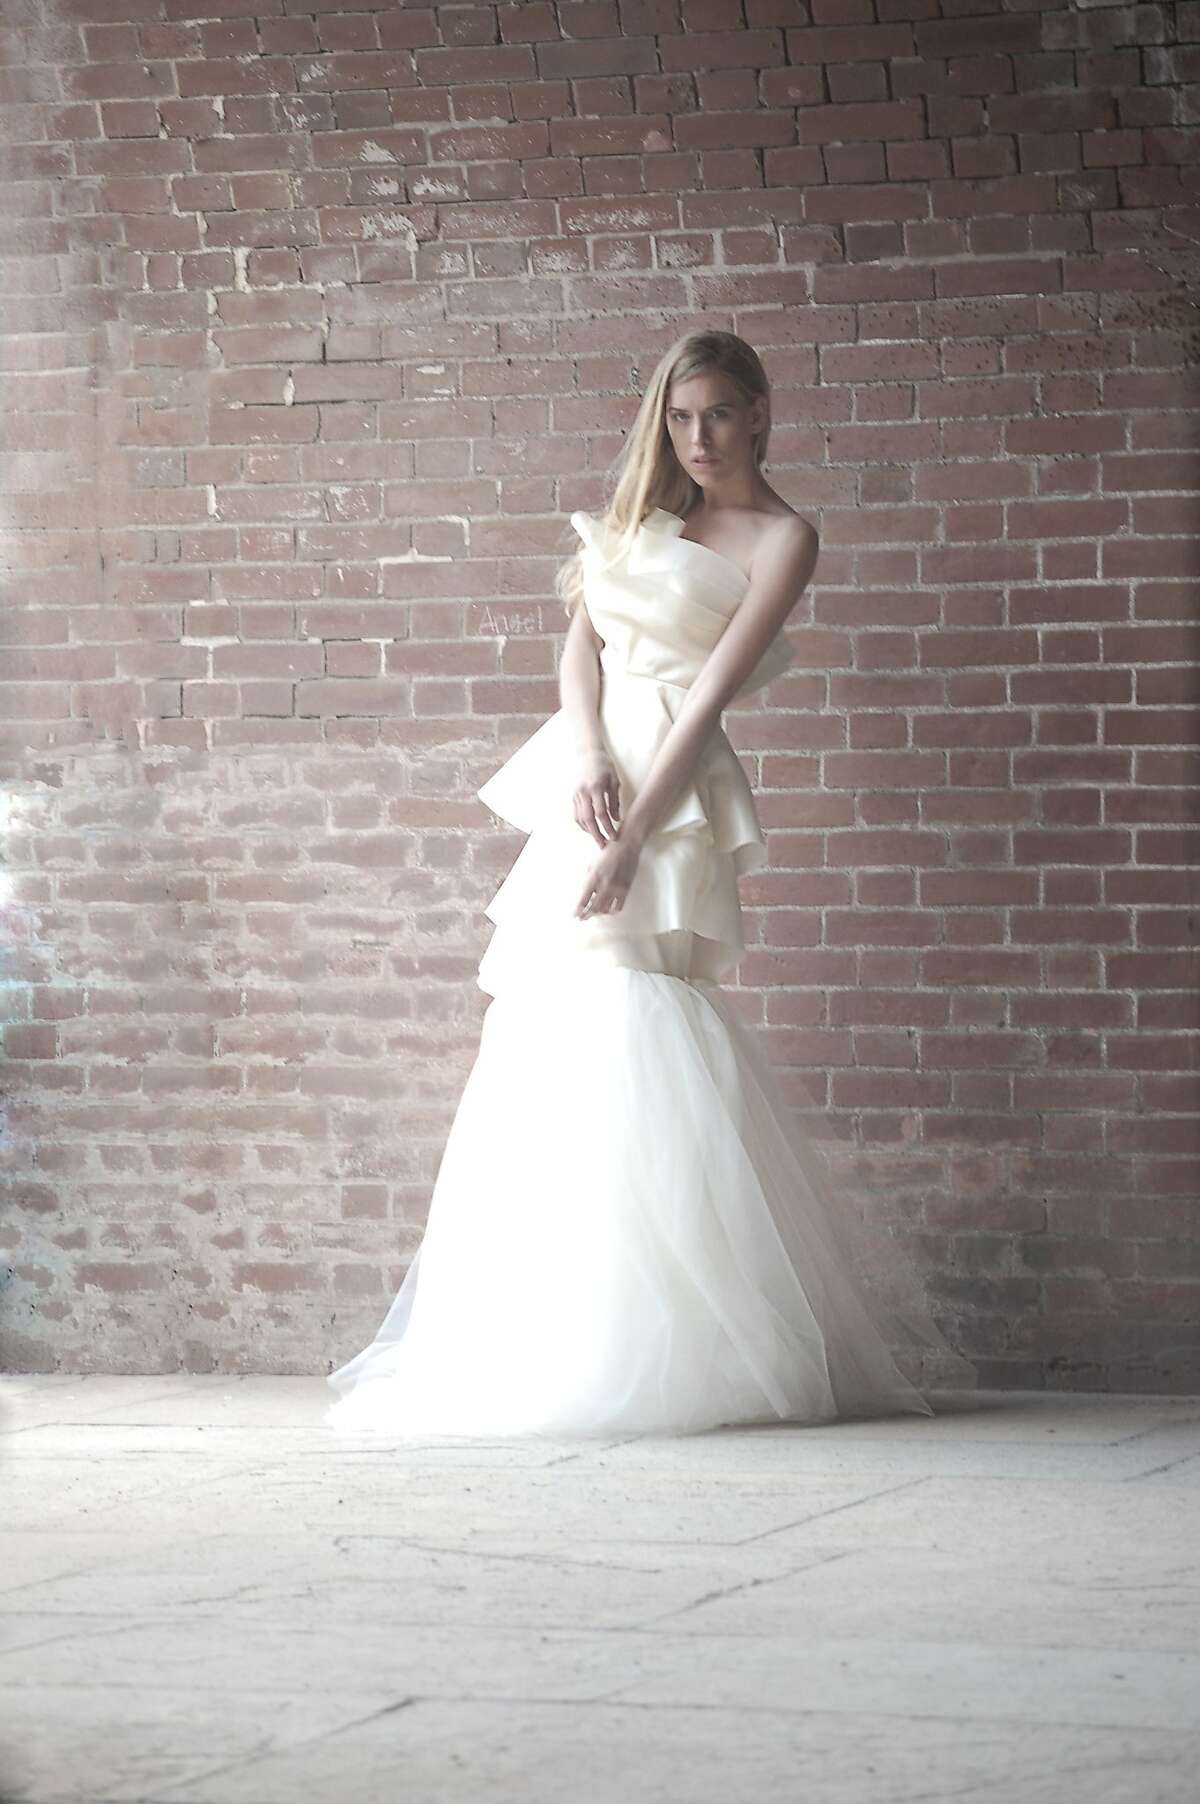 Designer Alyssa Casares' spring Alyssa Nicole collection of wedding dresses range from $1,500 to $3,500, with a lead time of four months, and ready-to-wear pieces $100 to $400, with a one to two week lead time.